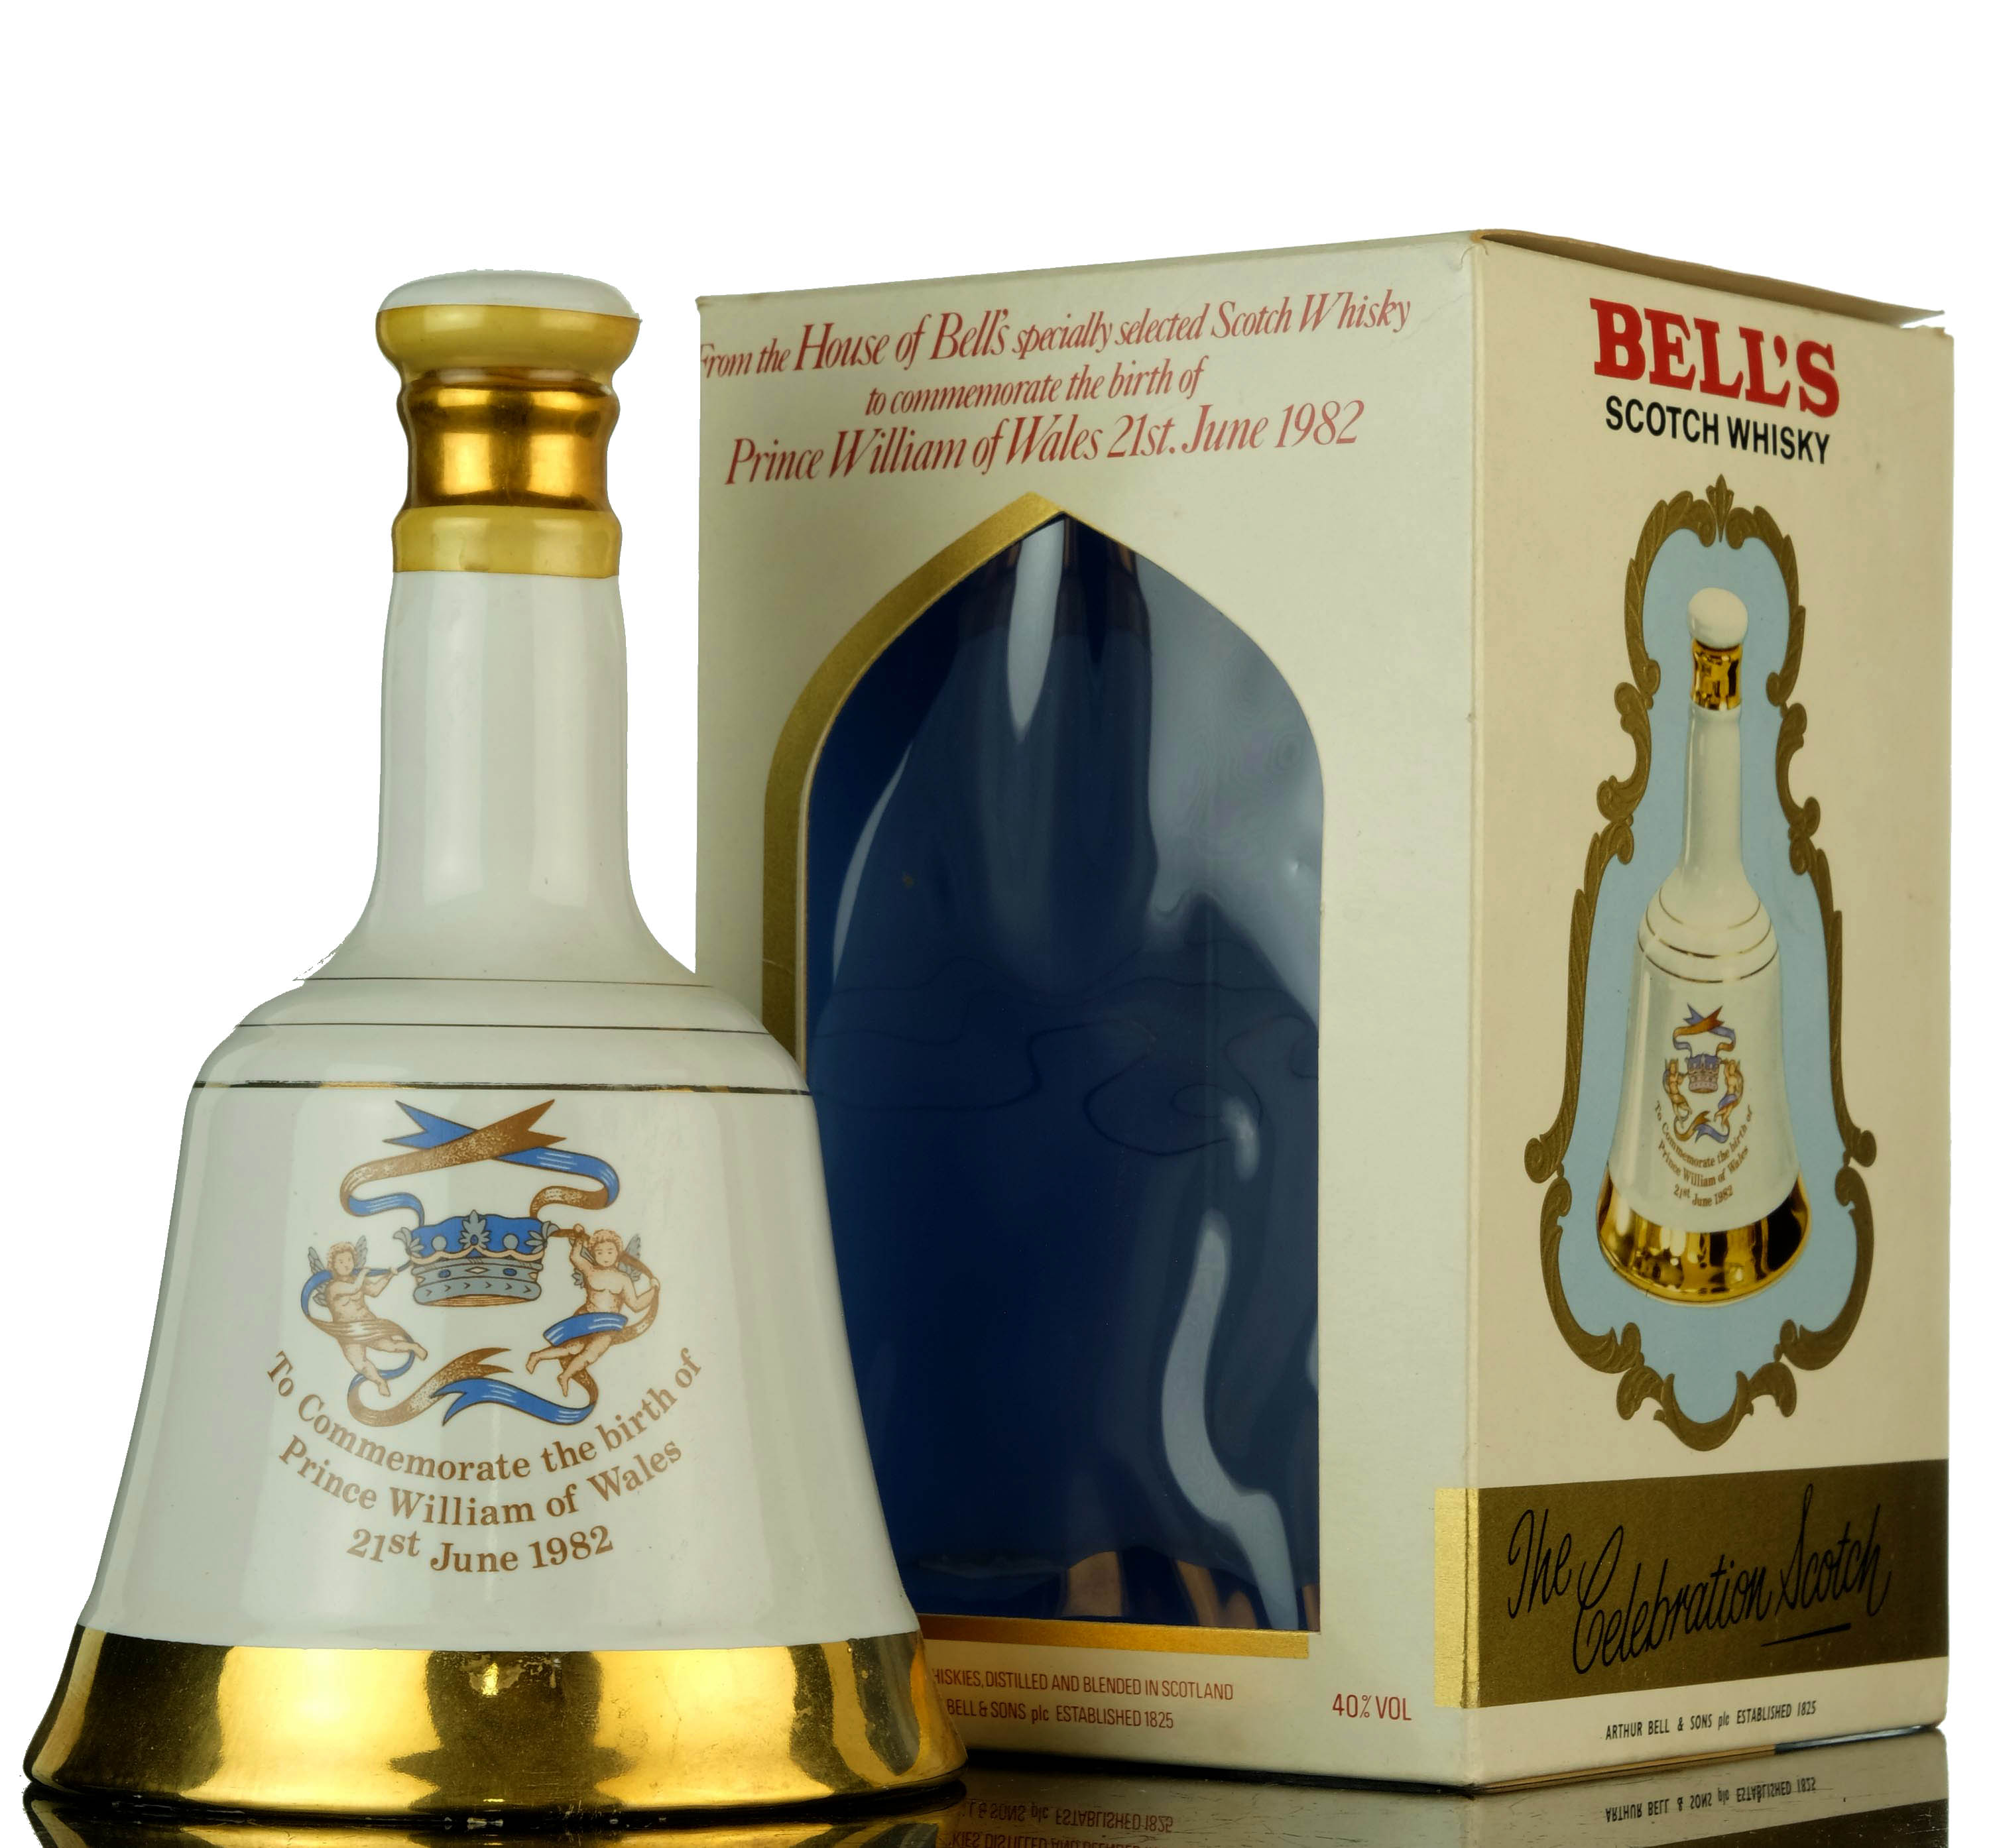 bells to commemorate the birth of prince william of wales